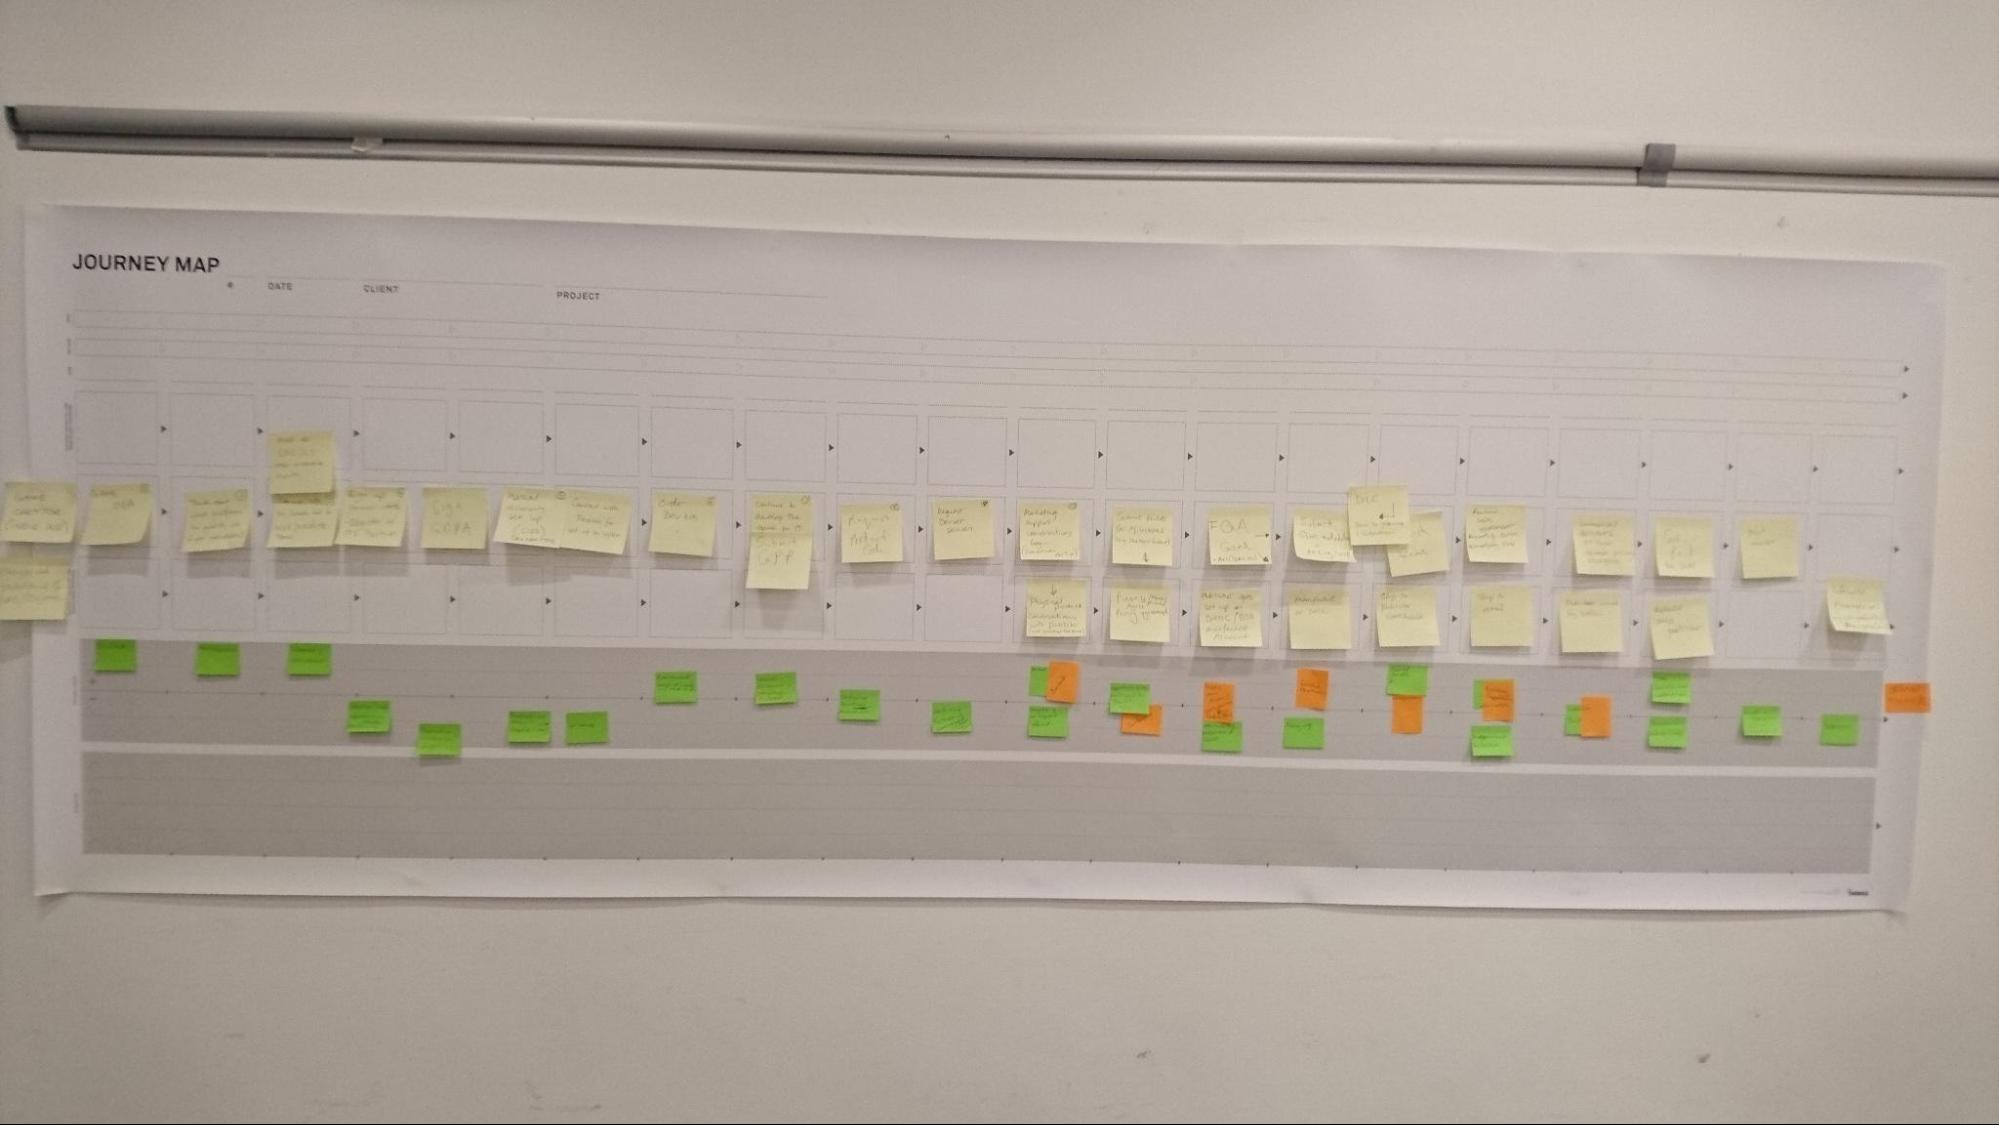 Empty journey map template on the wall with sticky notes on it.